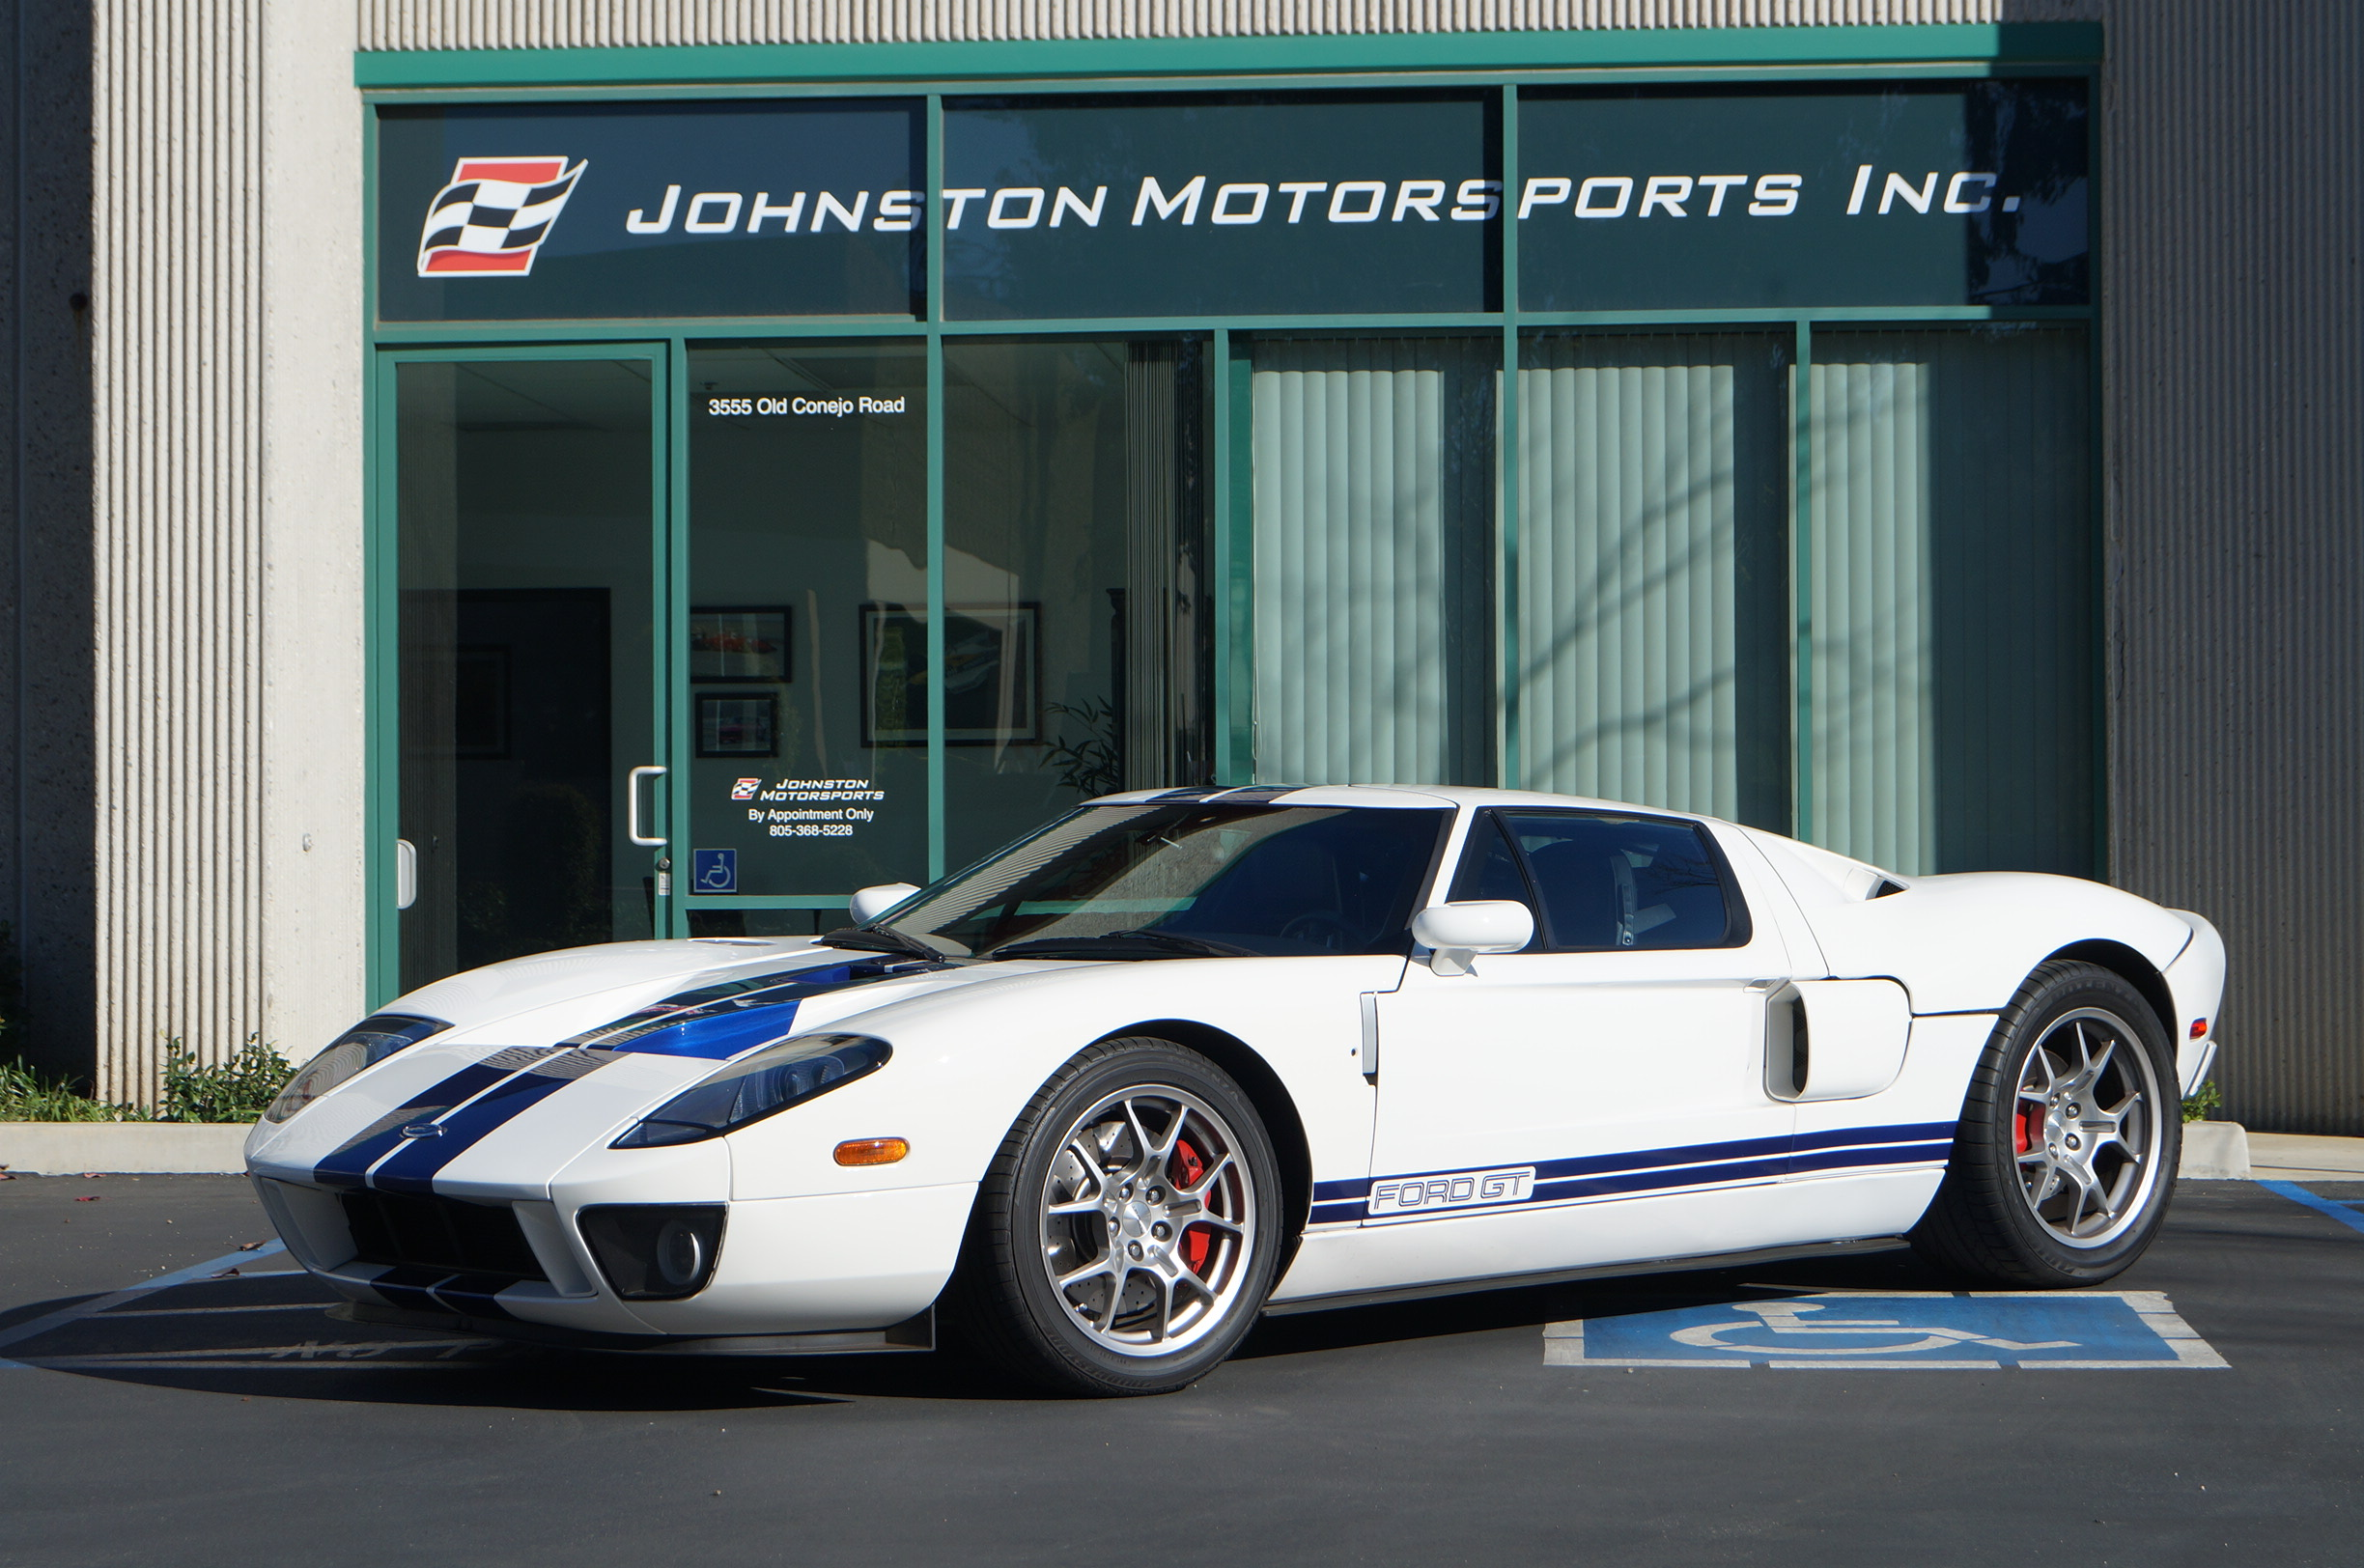 White Ford GT, Johnston Motorsports